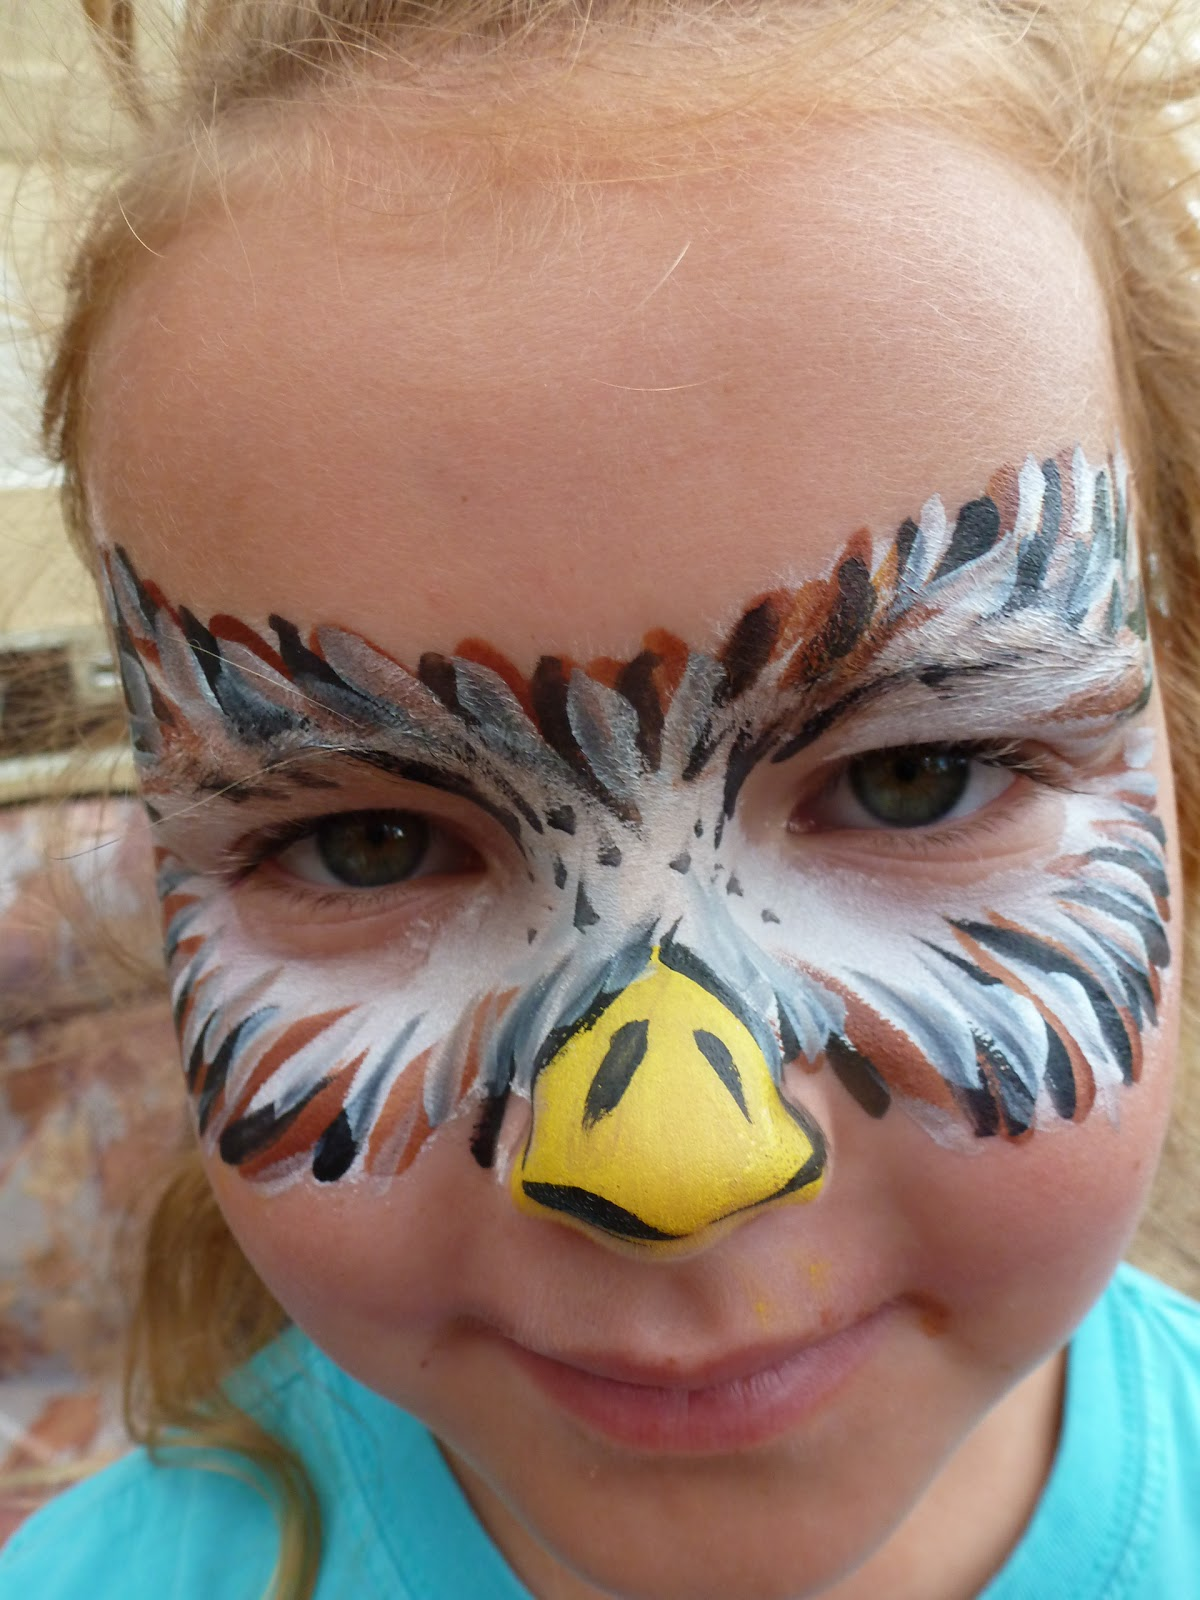 Face Paint The Story Of Makeup Amazon Co Uk Lisa: Fairy Tale Face Painting